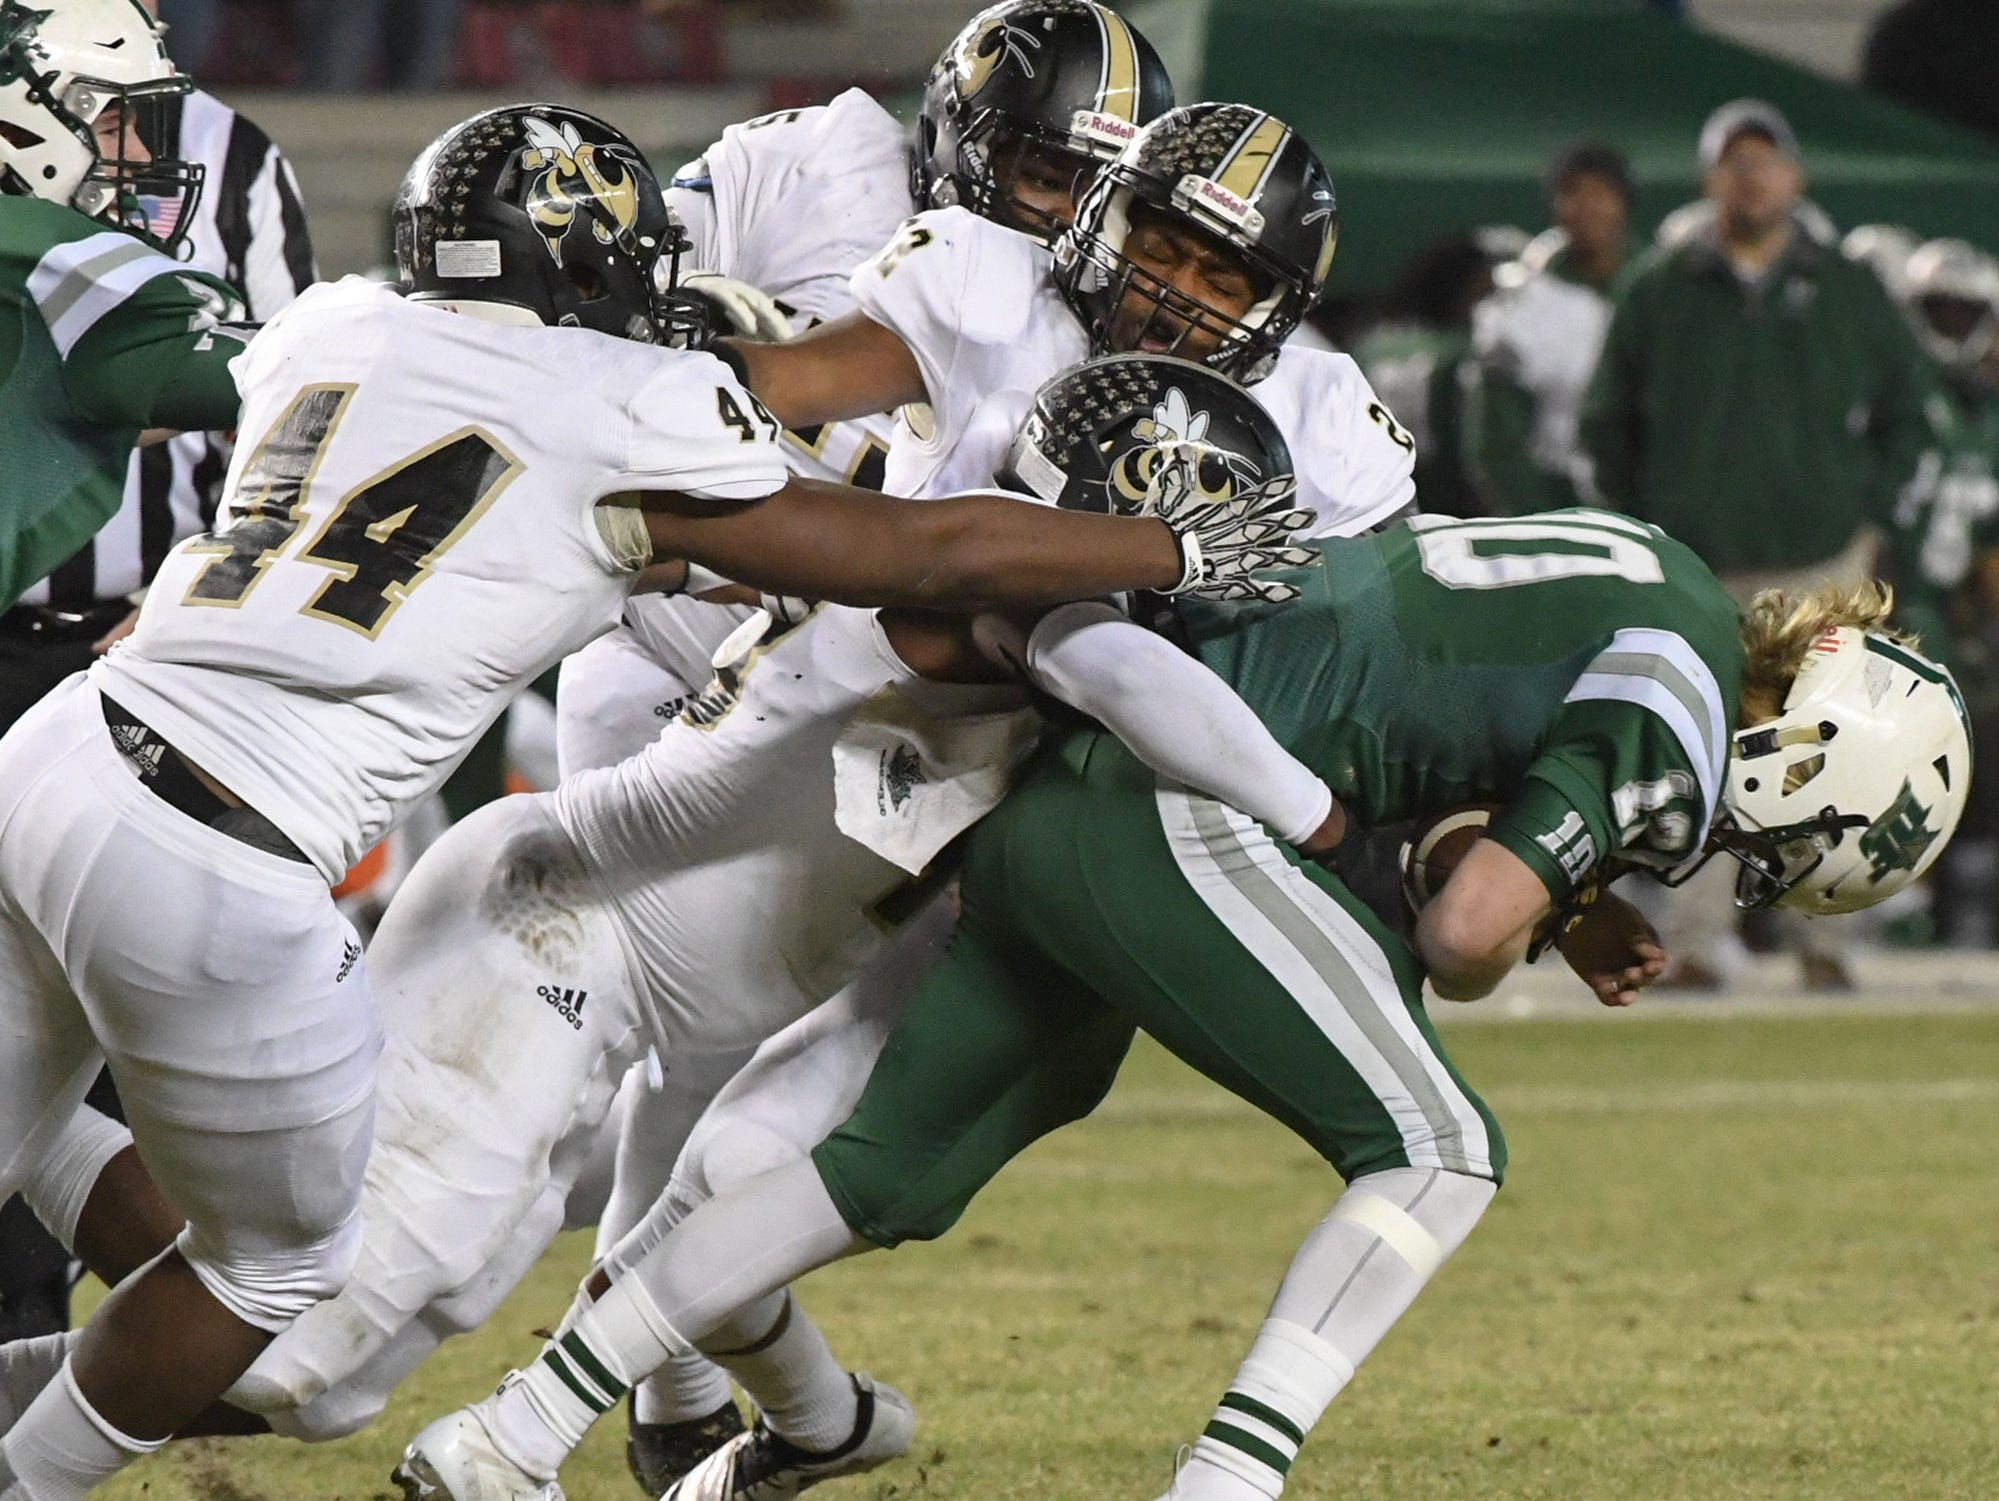 TL Hanna junior Jaylin Thomas (43), TL Hanna junior Cameron Chandler (44) and TL Hanna senior Jaydon McKinney (22) tackle Dutch Fork junior Tyler Olenchuk(10) during the first quarter of the Class AAAAA state championship game at Williams-Brice Stadium in Columbia Saturday, December 8, 2018.